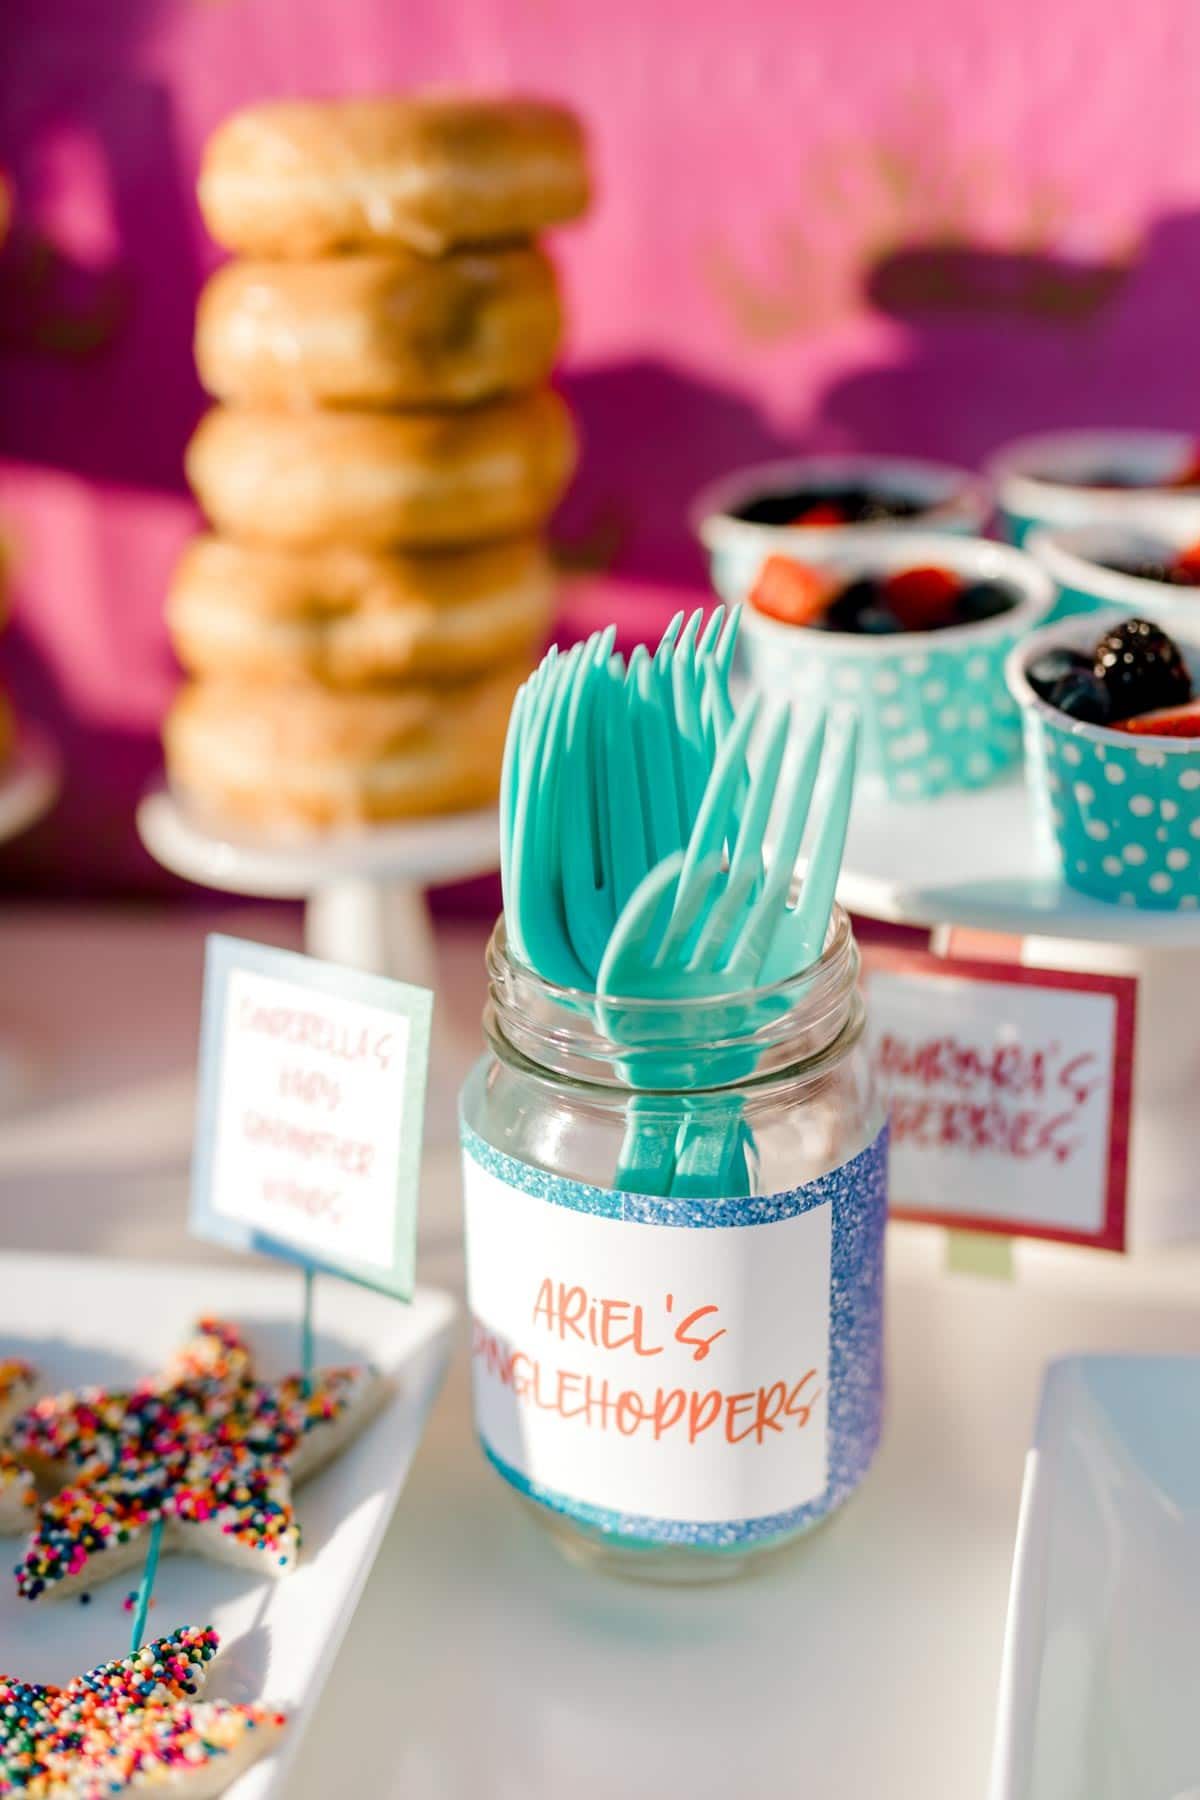 glass jar with turquoise forks